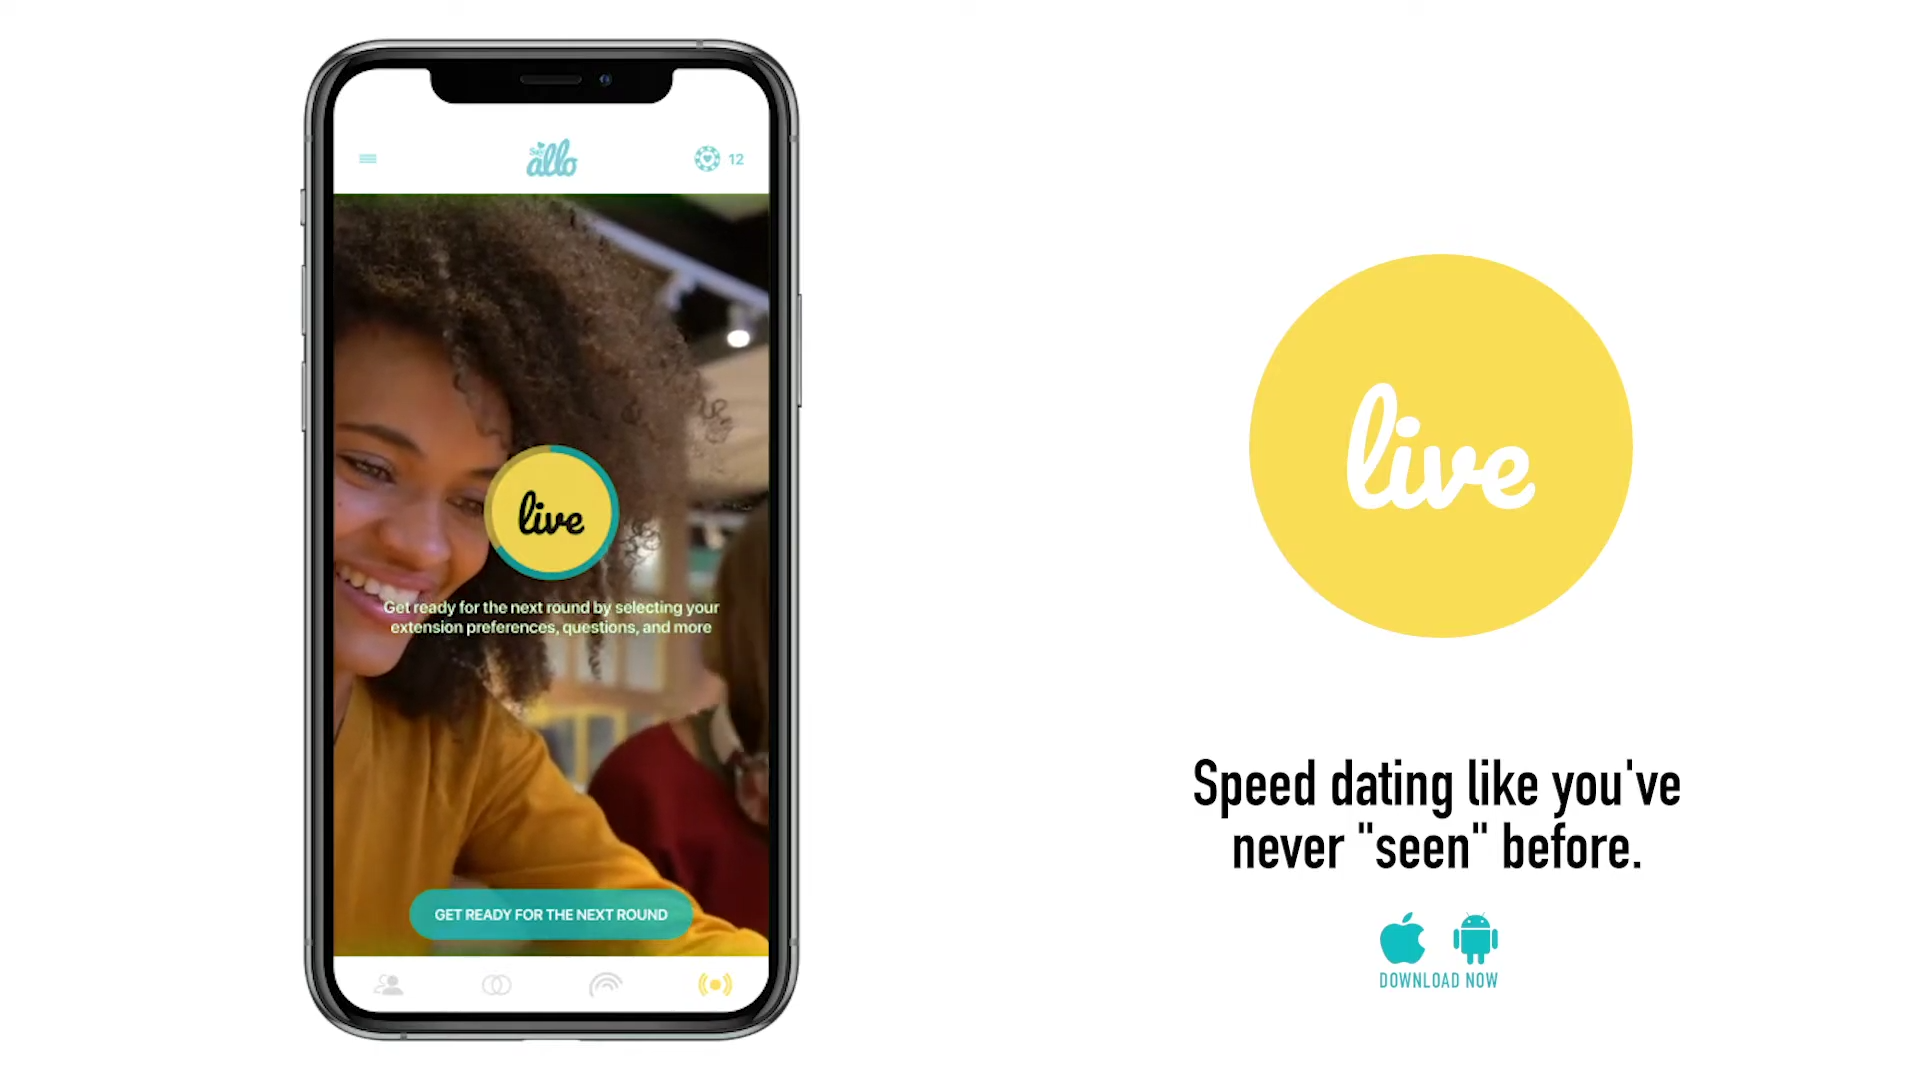 Say Allo Announces Video Speed Dating Game 'Live'